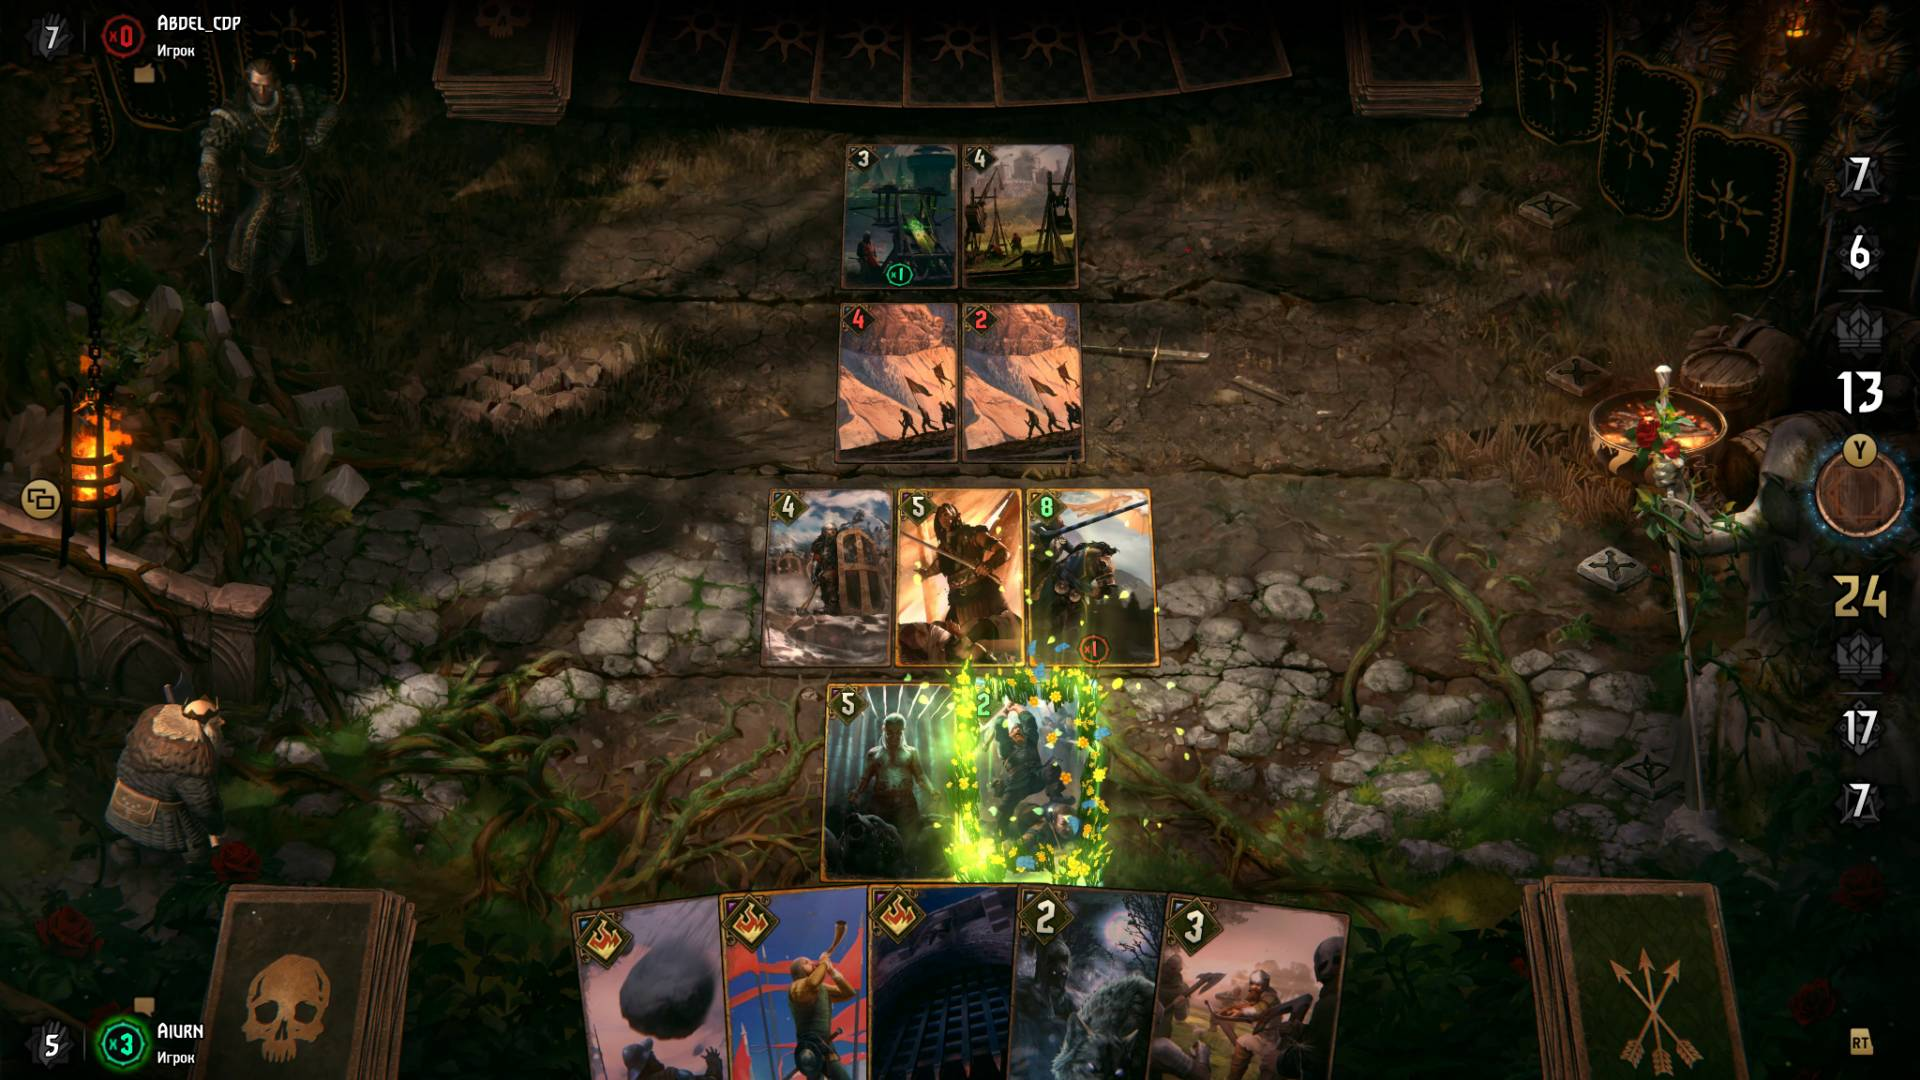 Gwent: Le jeu de cartes Witcher